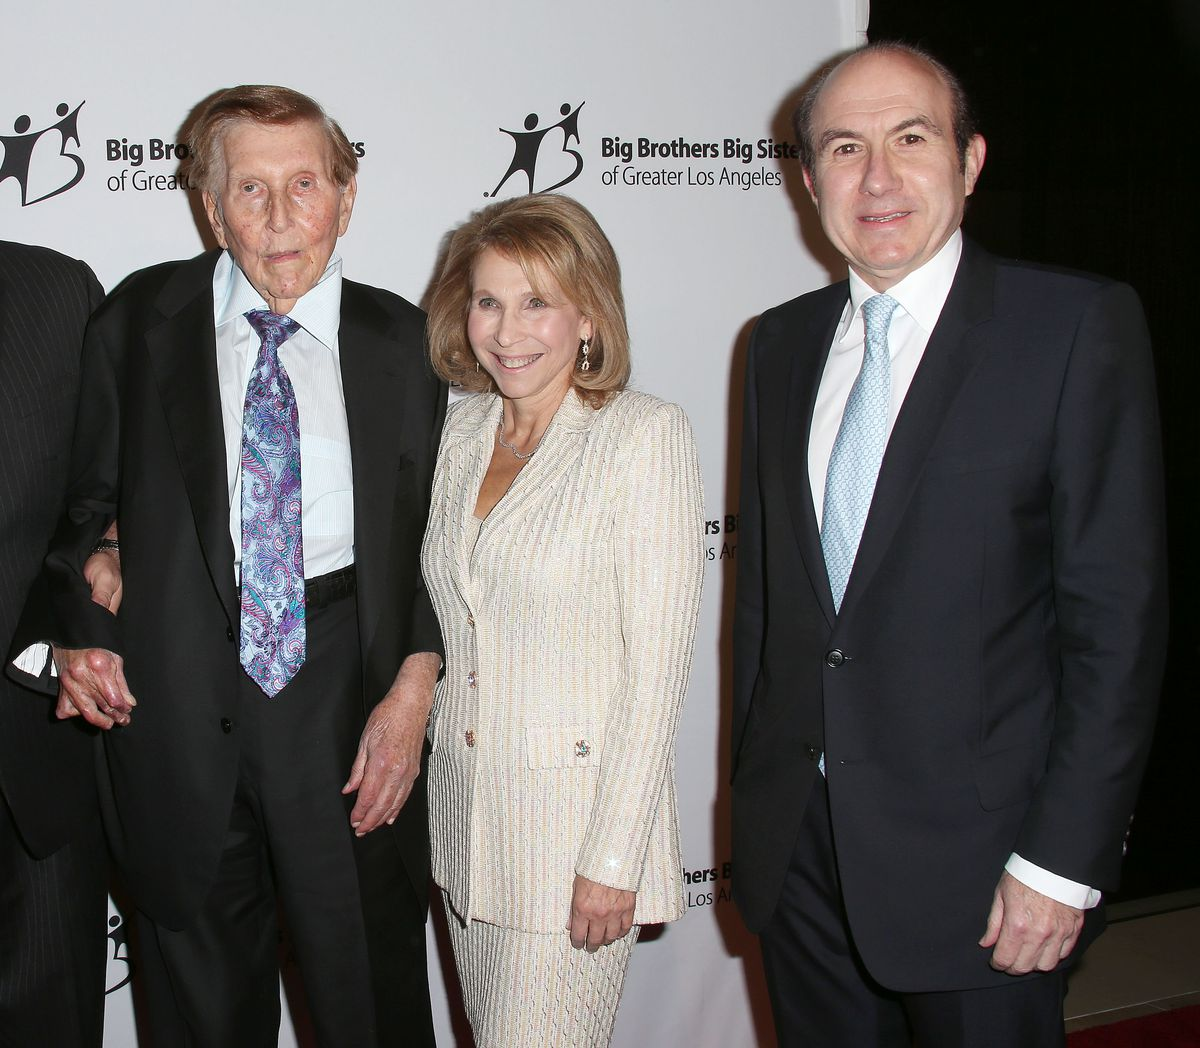 Big Brothers Big Sisters Of Greater Los Angeles 2012 Rising Stars Gala - Arrivals